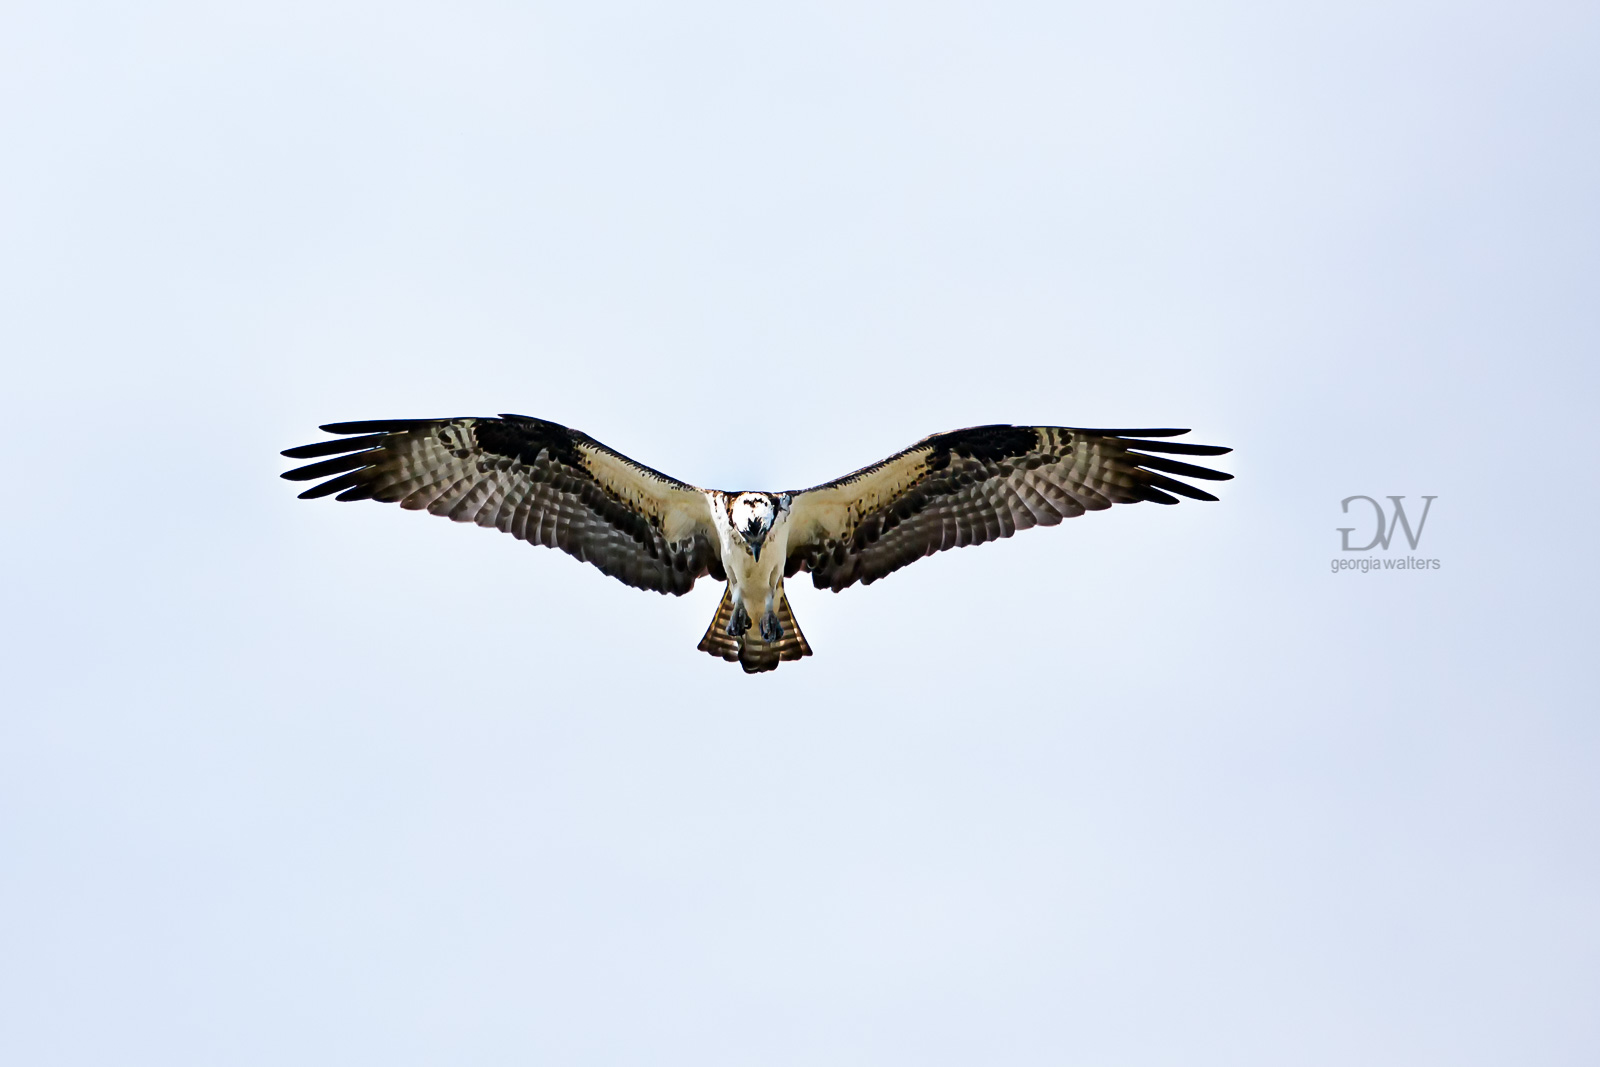 Osprey in flight. The feathers on his wings create the image of skulls.